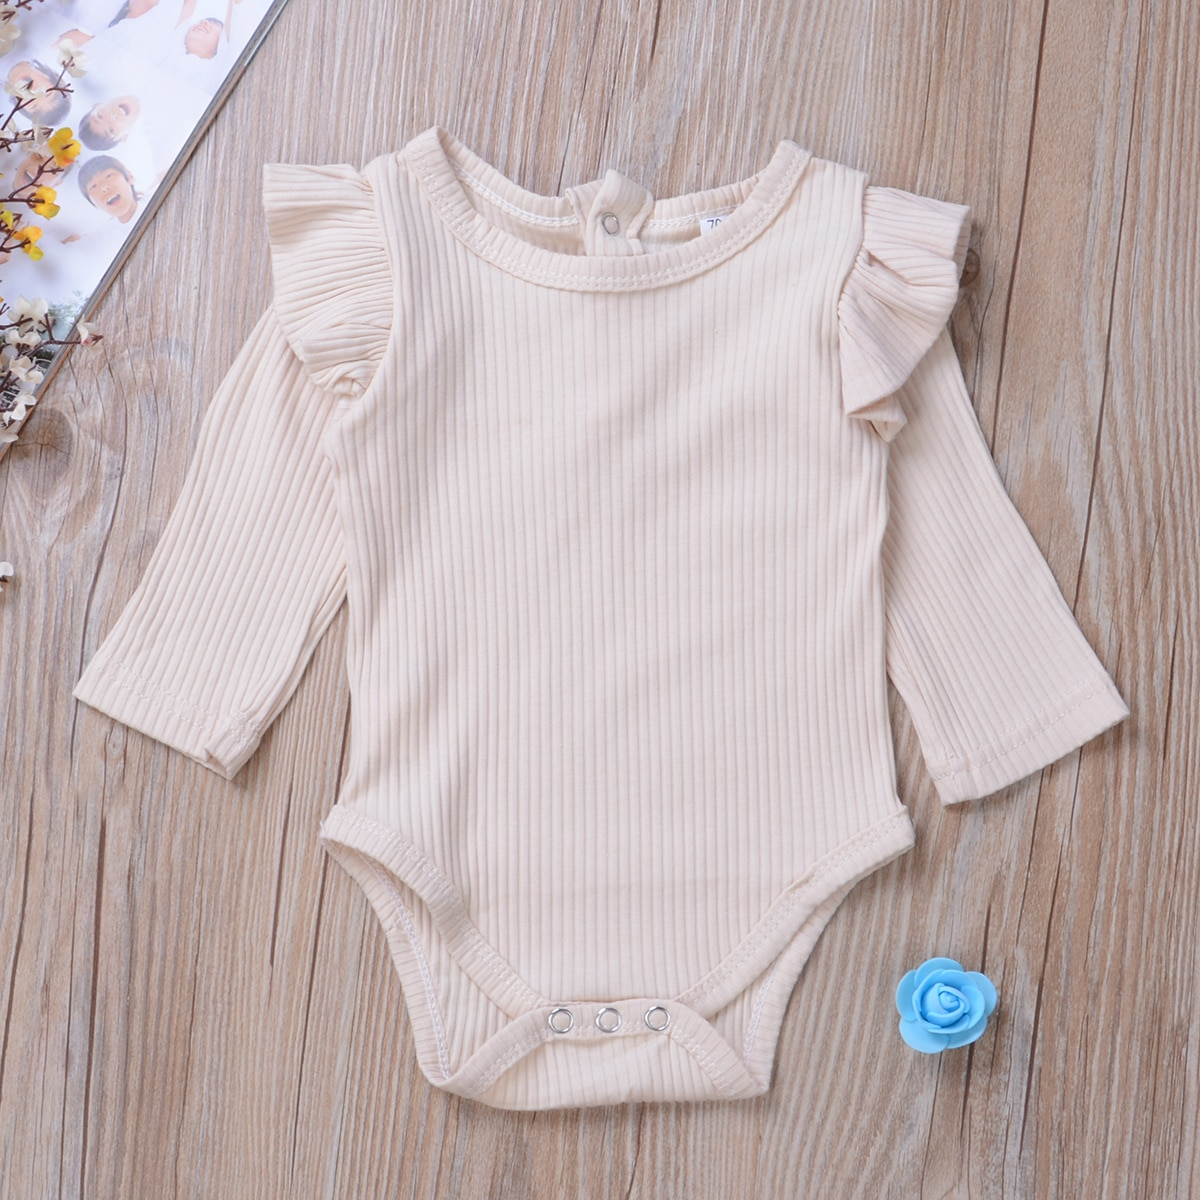 baby girl clothes autumn lattice knitted baby clothes newborn baby girl romper cotton baby cardigan sweater romper jumpsuit 2020 Newest Newborn Baby Girl Clothes Solid Color Long Sleeve Knitted Cotton Romper Jumpsuit Outfits Baby Clothes 0-24M